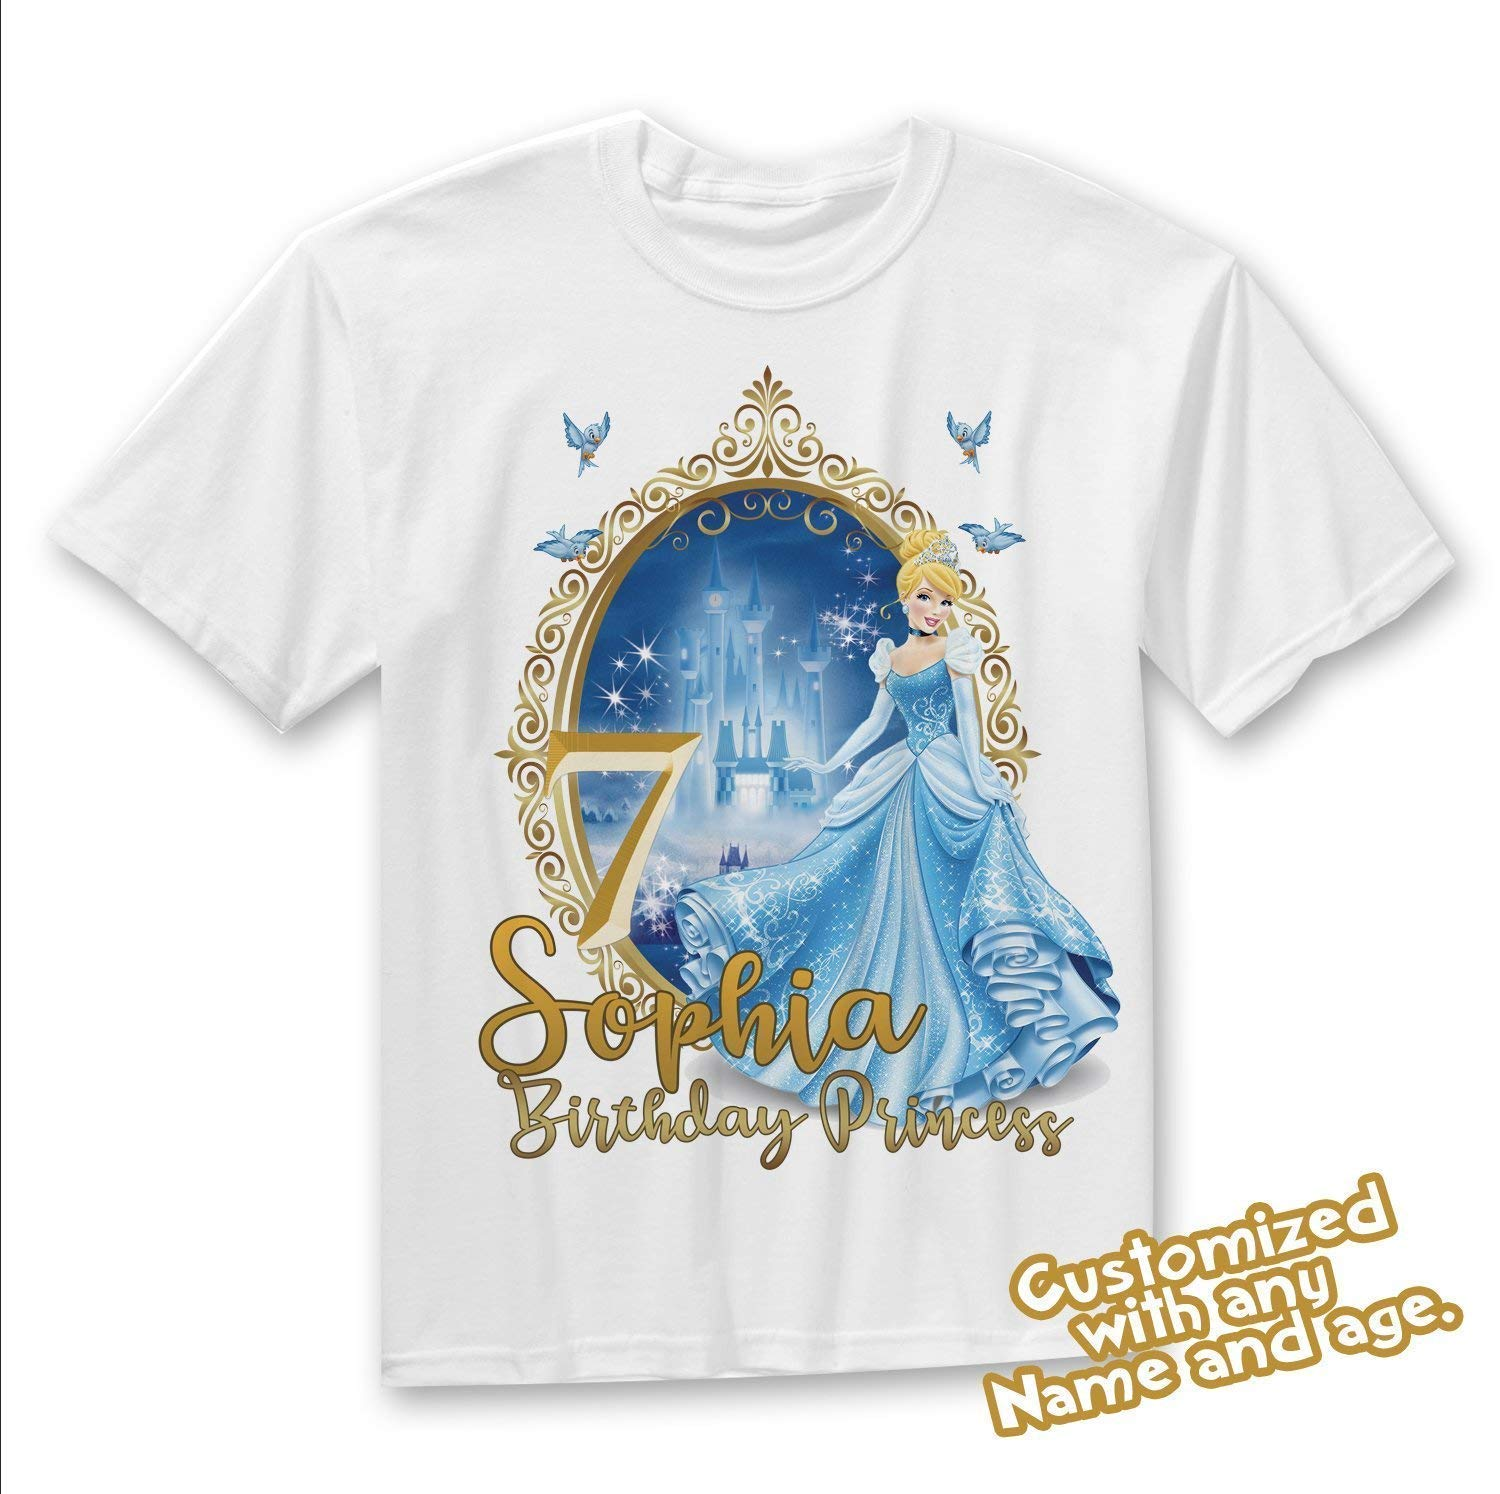 0b0d86605 Customized Disney Princess Shirts – EDGE Engineering and Consulting ...